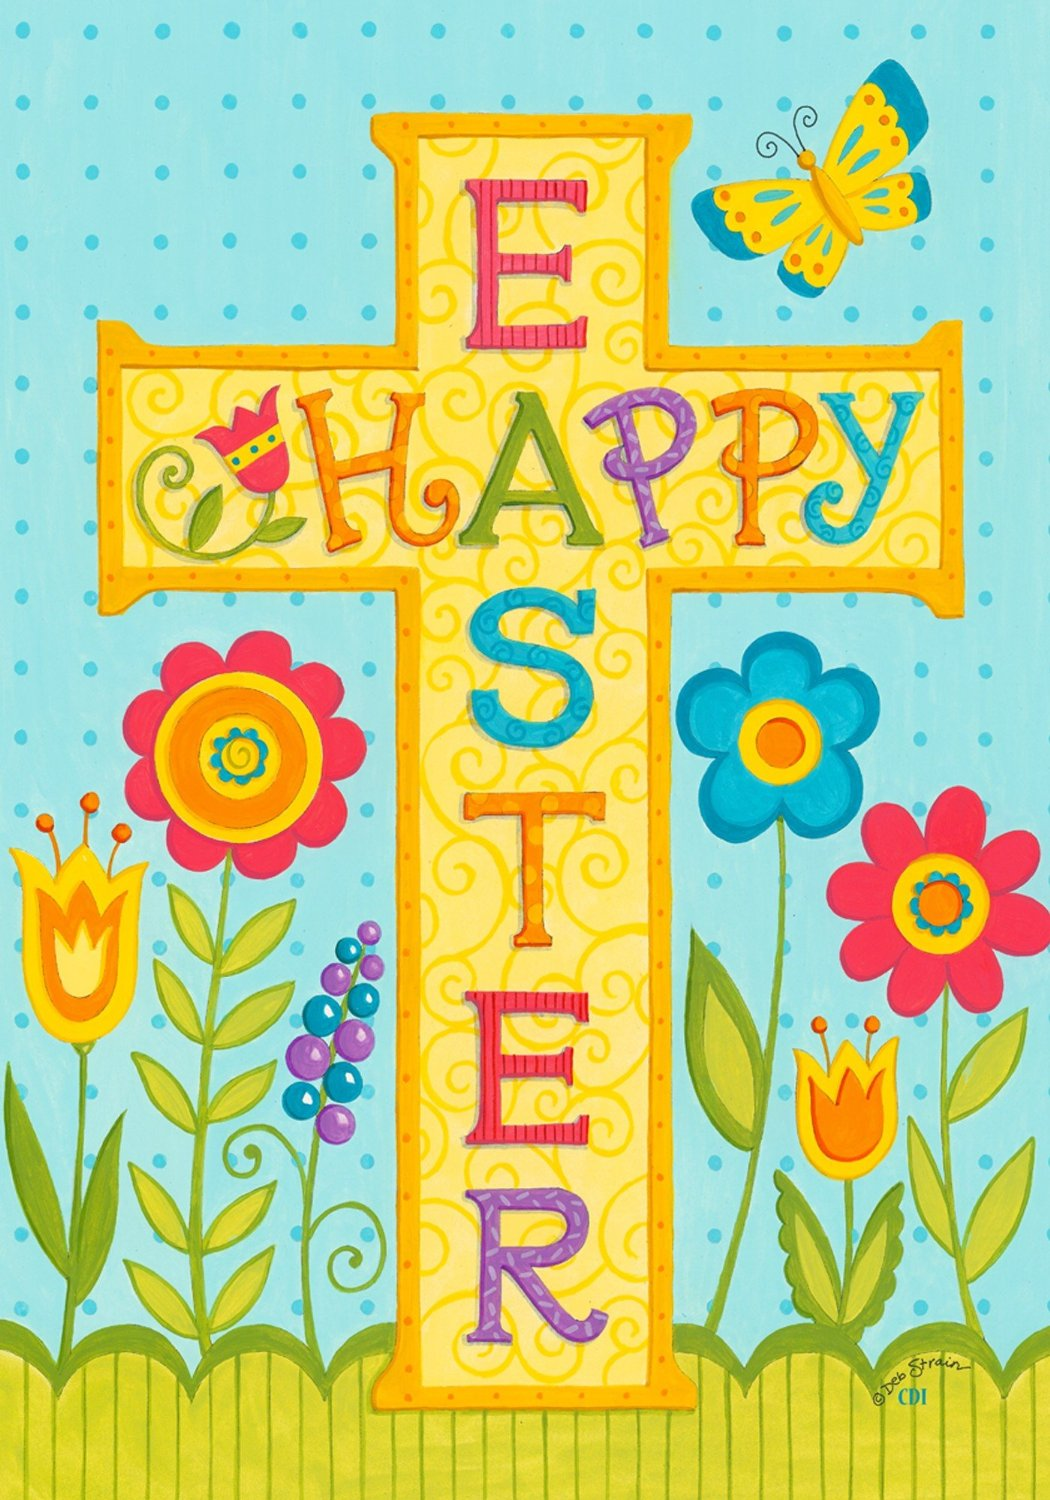 easter religious happy easter religious cross easter clipart rh ipswichroadurc org uk Easter Spiritual Quotes Funny Easter Quotes